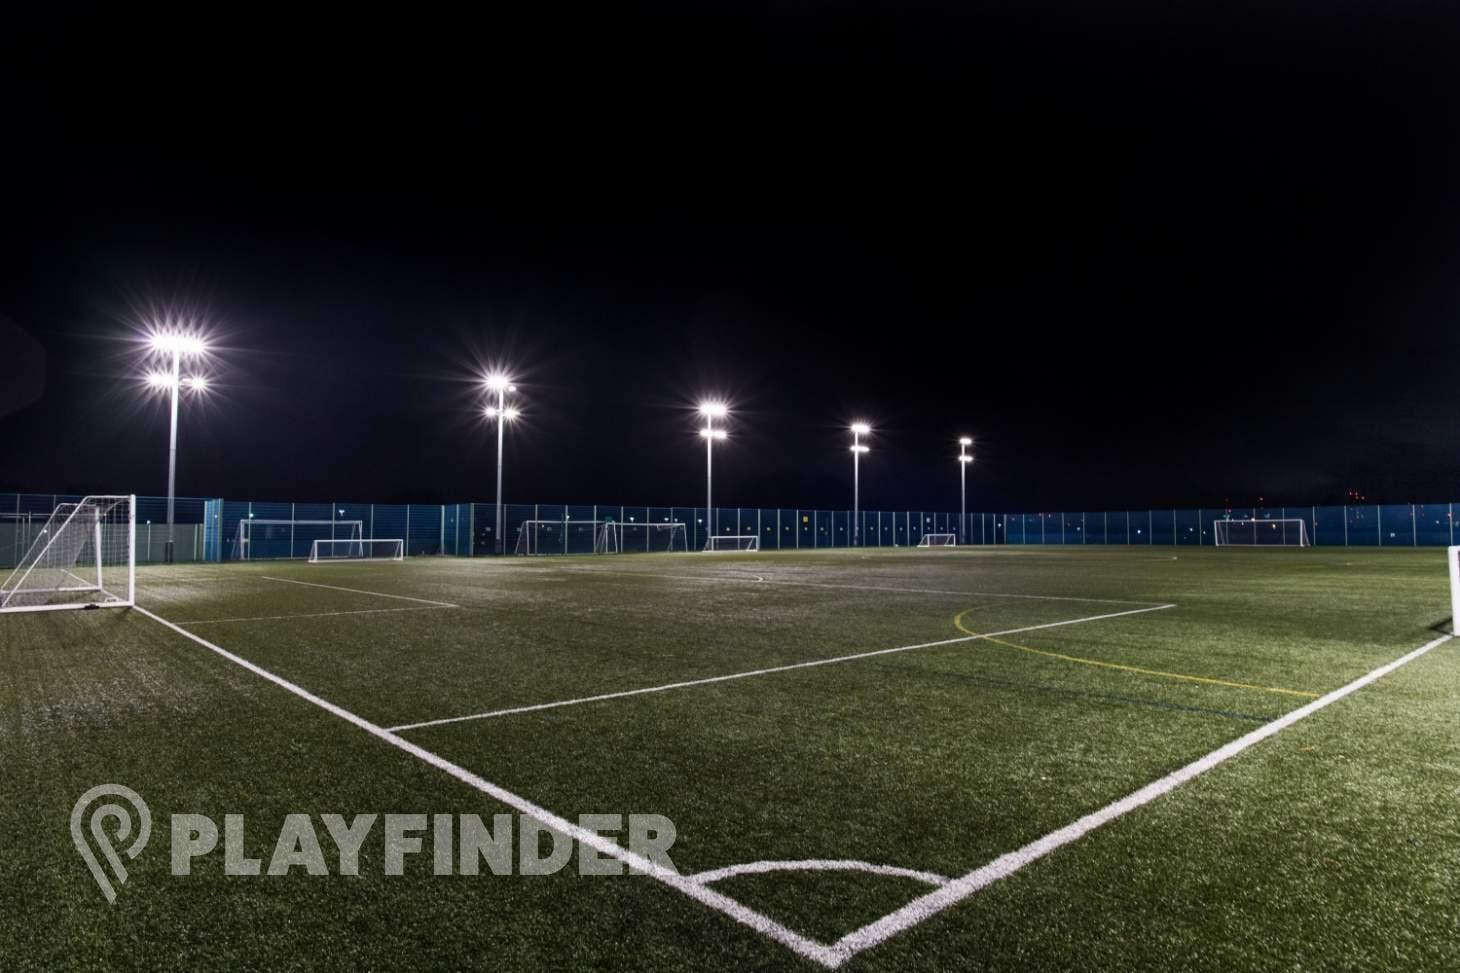 East Manchester Academy 5 a side   3G Astroturf football pitch